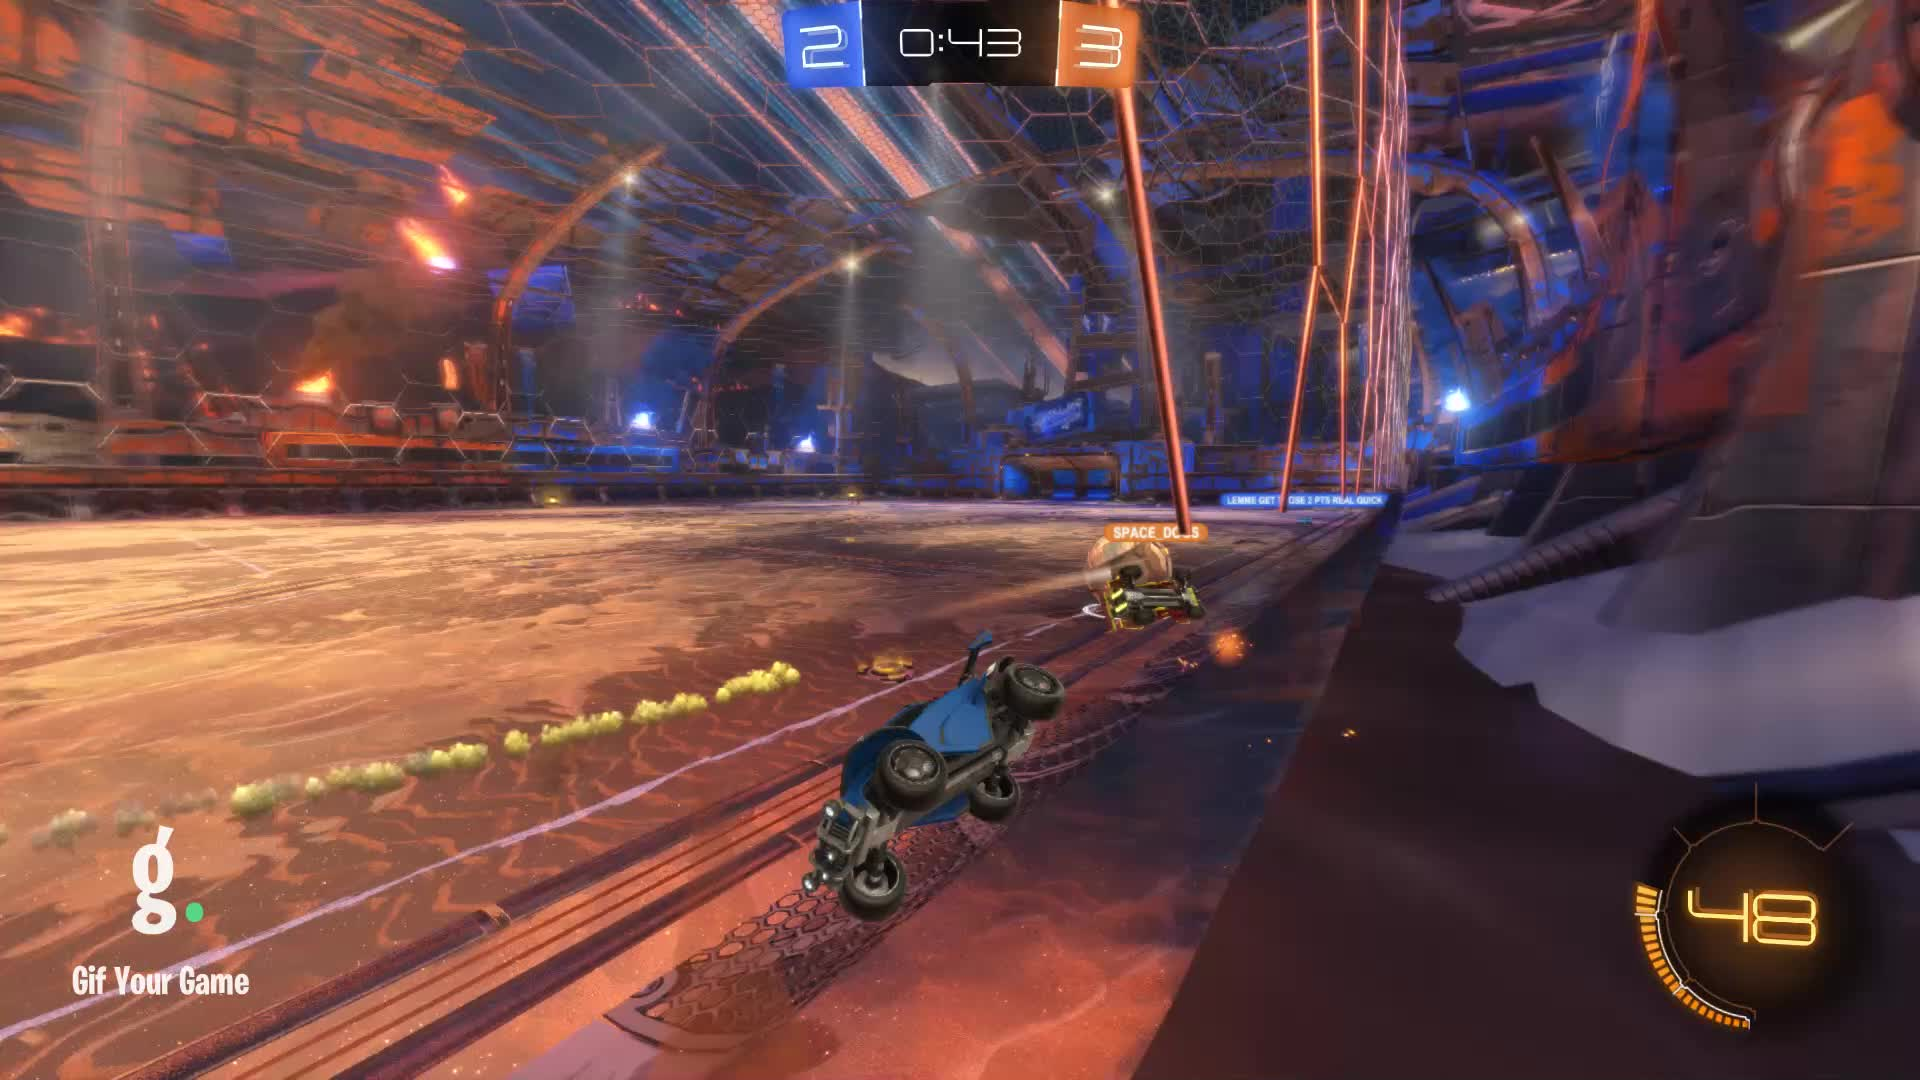 Assist, Gif Your Game, GifYourGame, Pebble Master, Rocket League, RocketLeague, Assist 4: Pebble Master GIFs